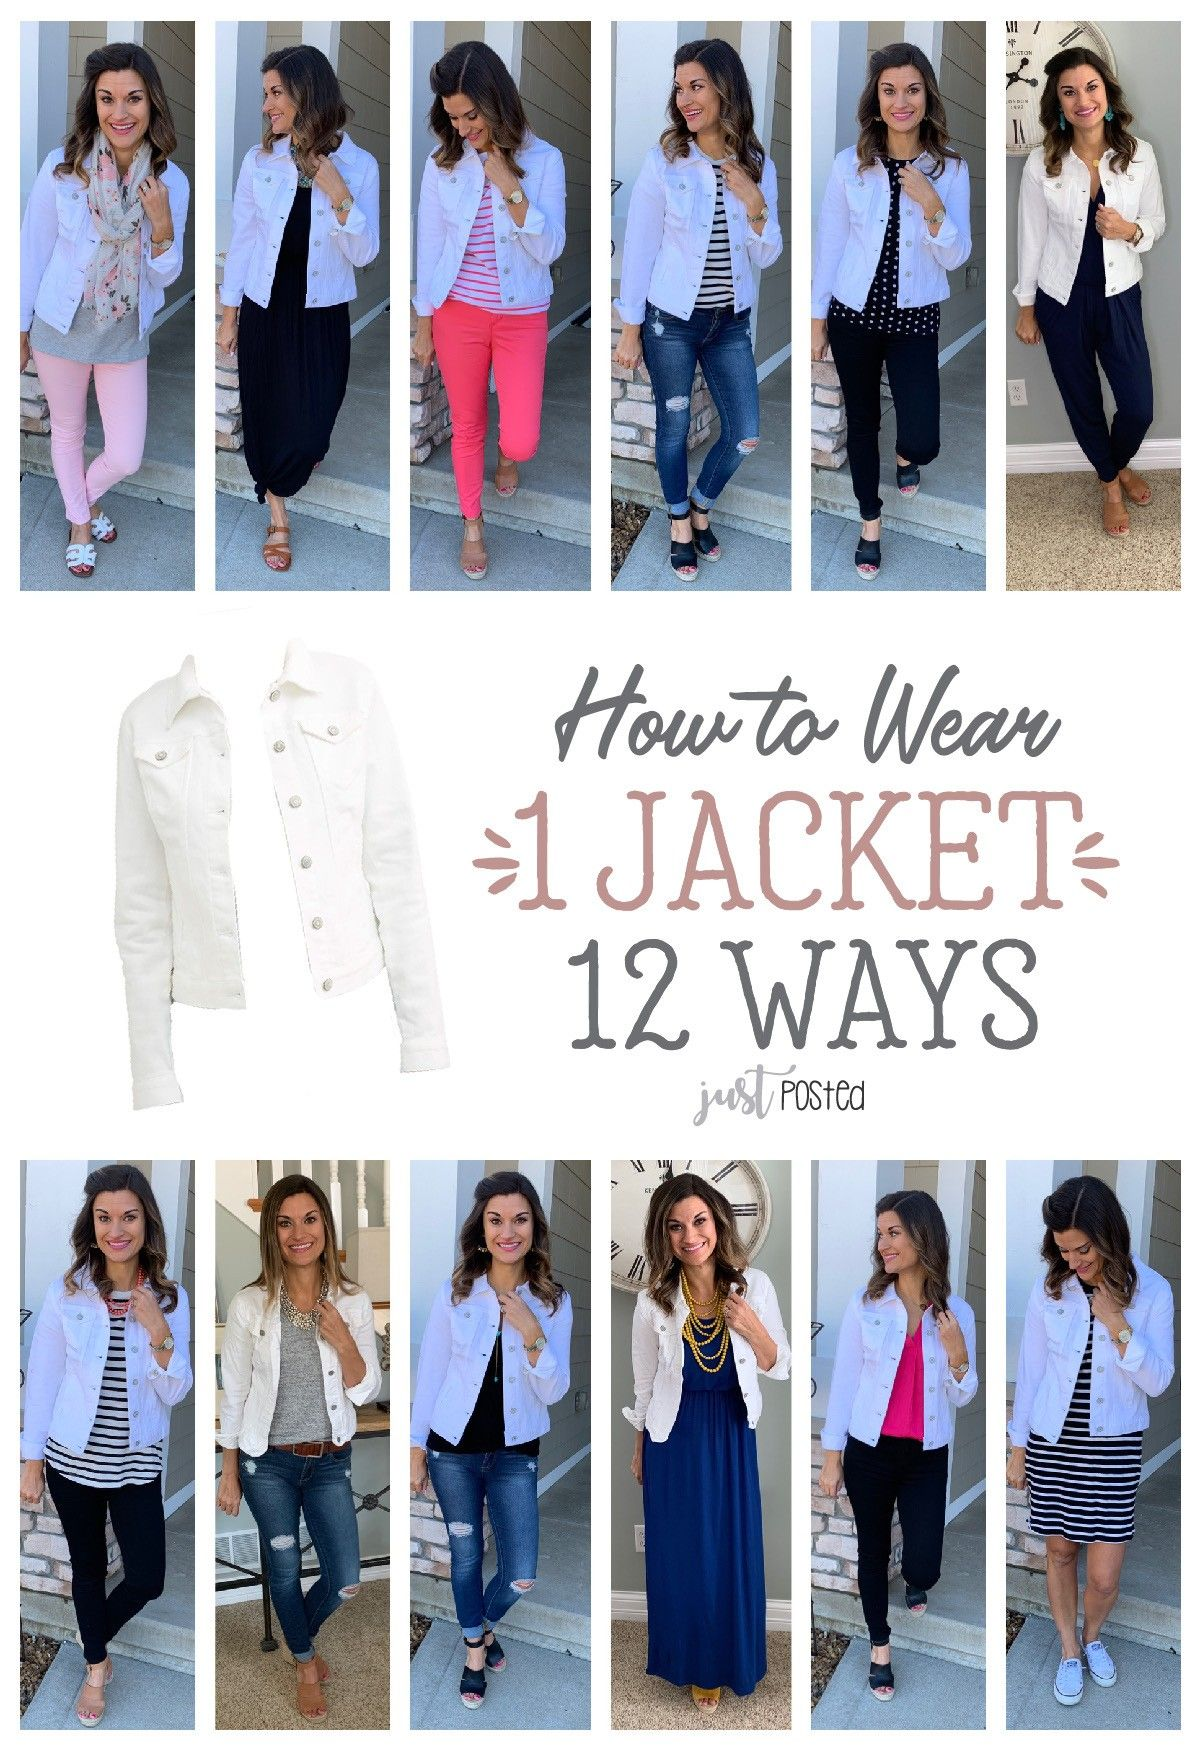 Pin By Stacey Ta On My Style In 2020 White Jean Jacket Outfits White Denim Jeans White Jean Jacket [ 1752 x 1201 Pixel ]